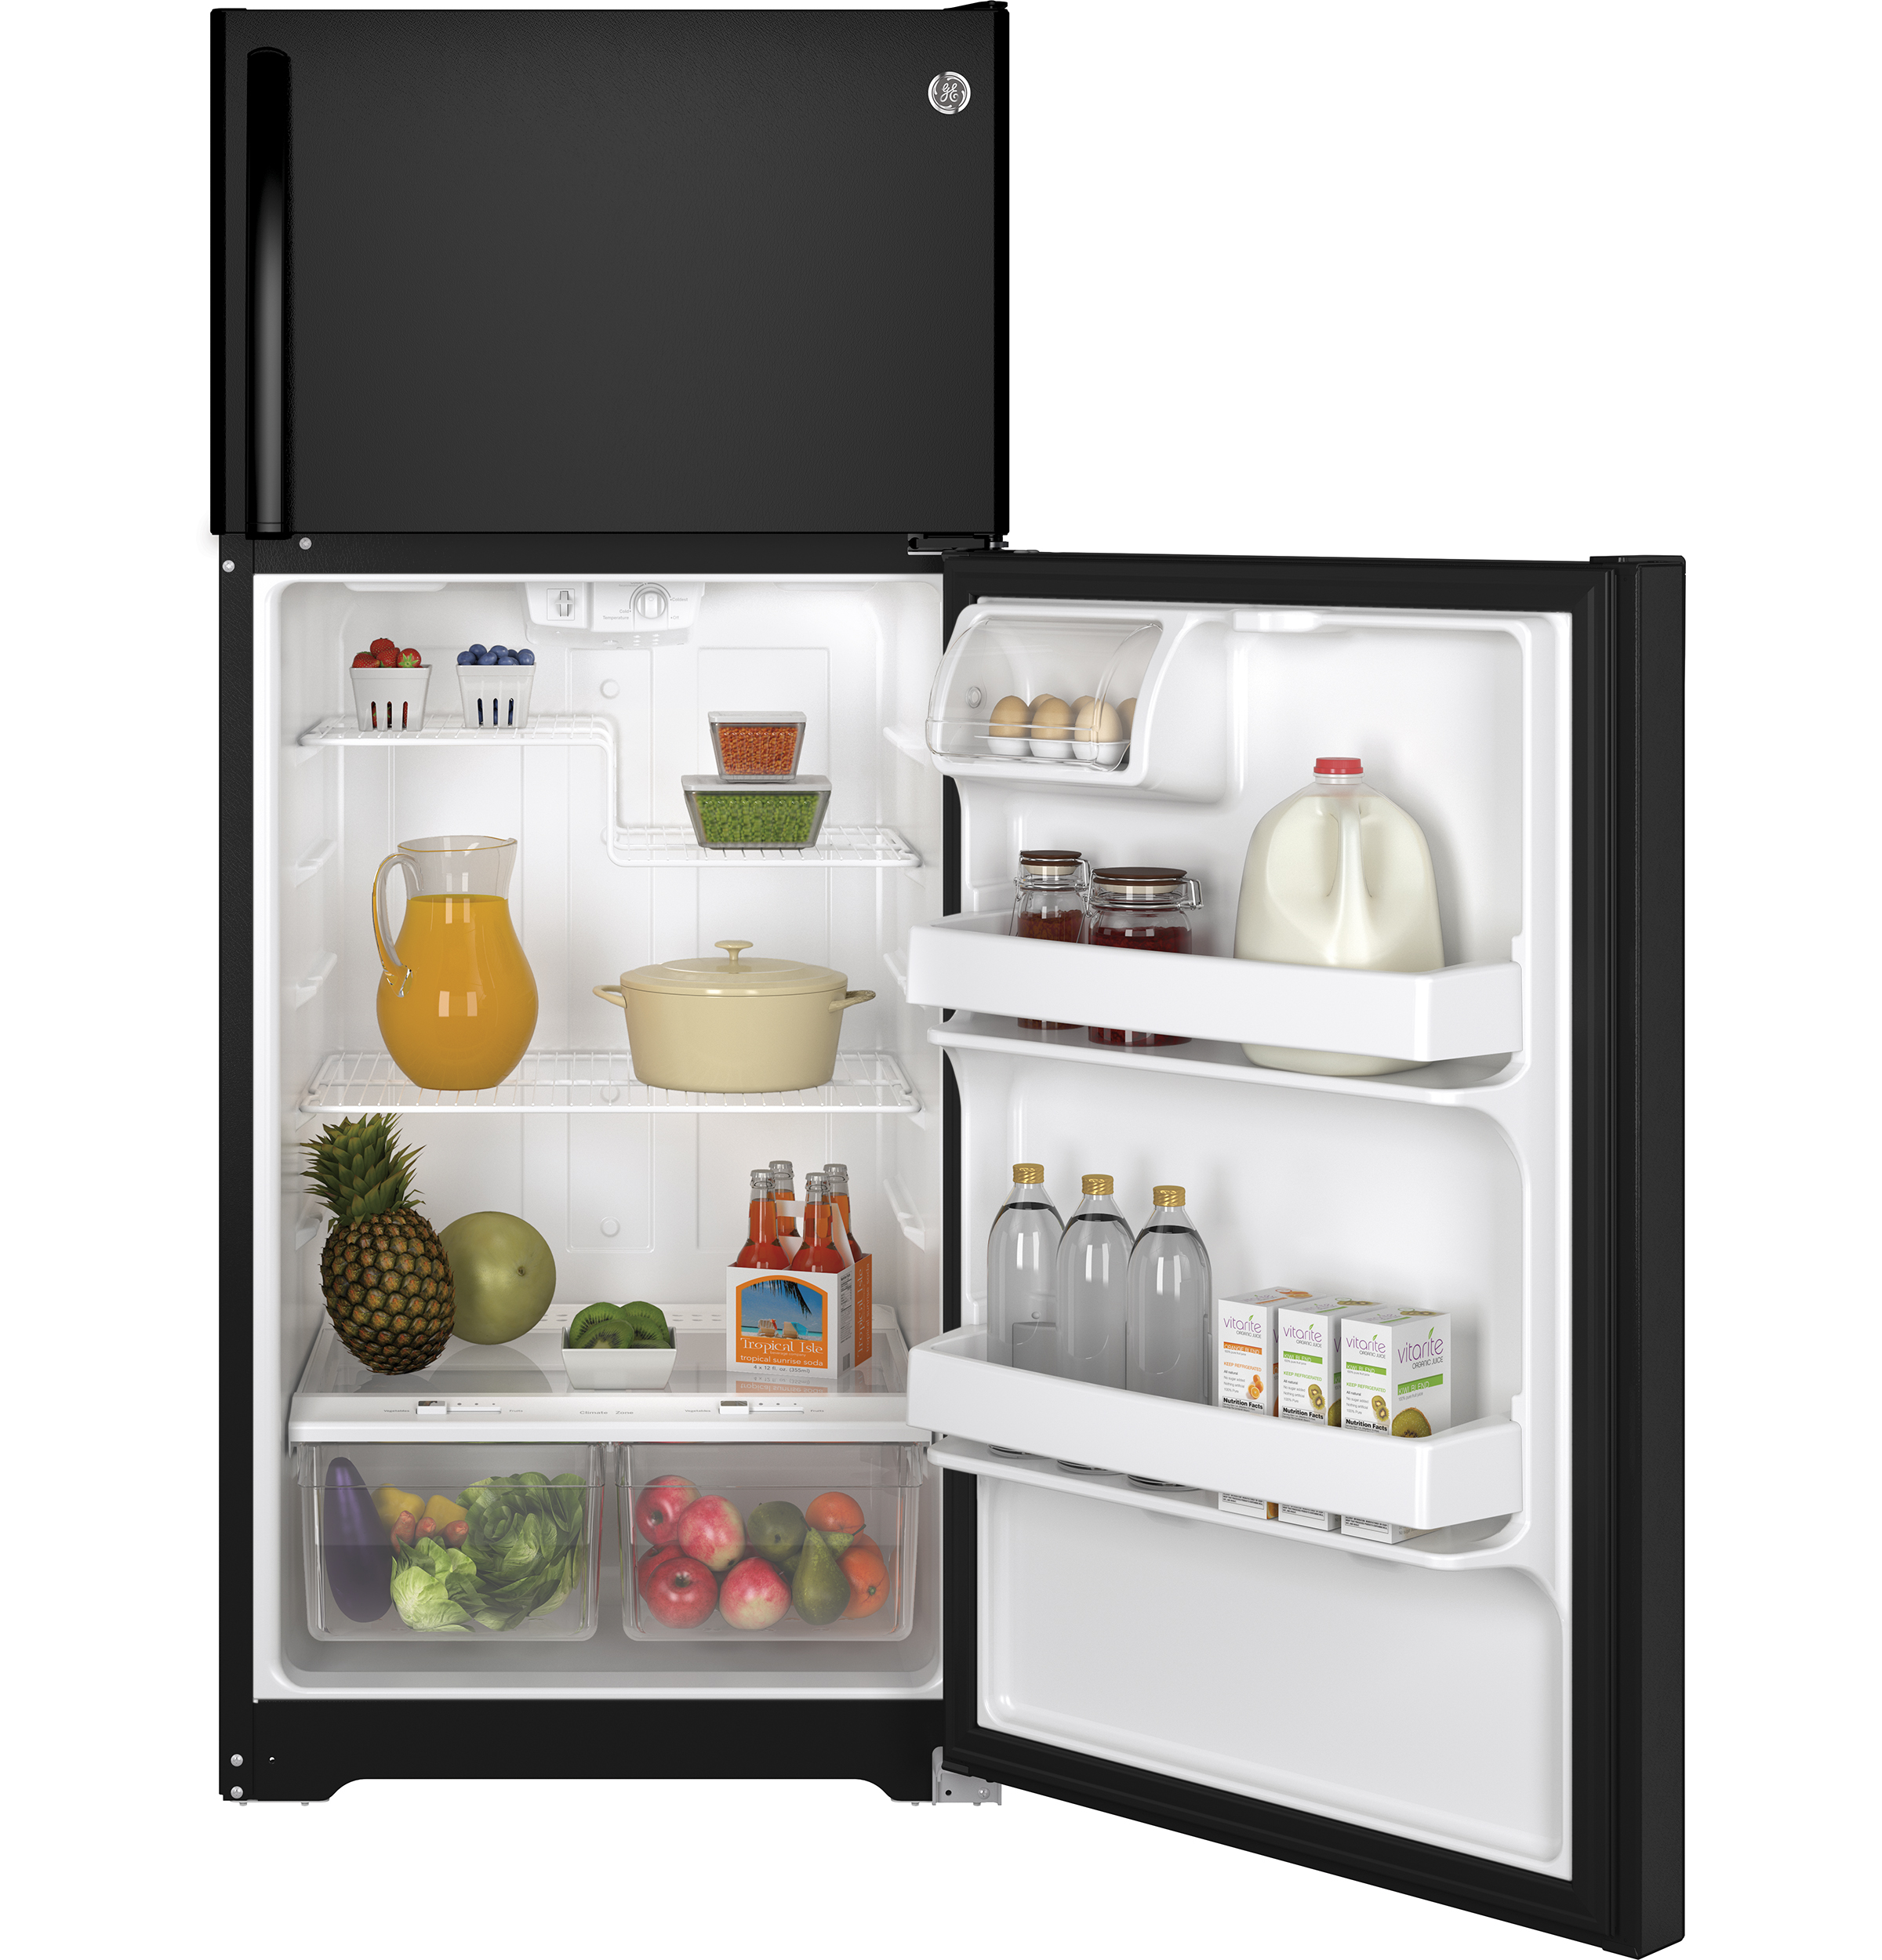 Ge Energy Star 155 Cu Ft Top Freezer Refrigerator Gte16dthbb Model 25 Schematic Product Image